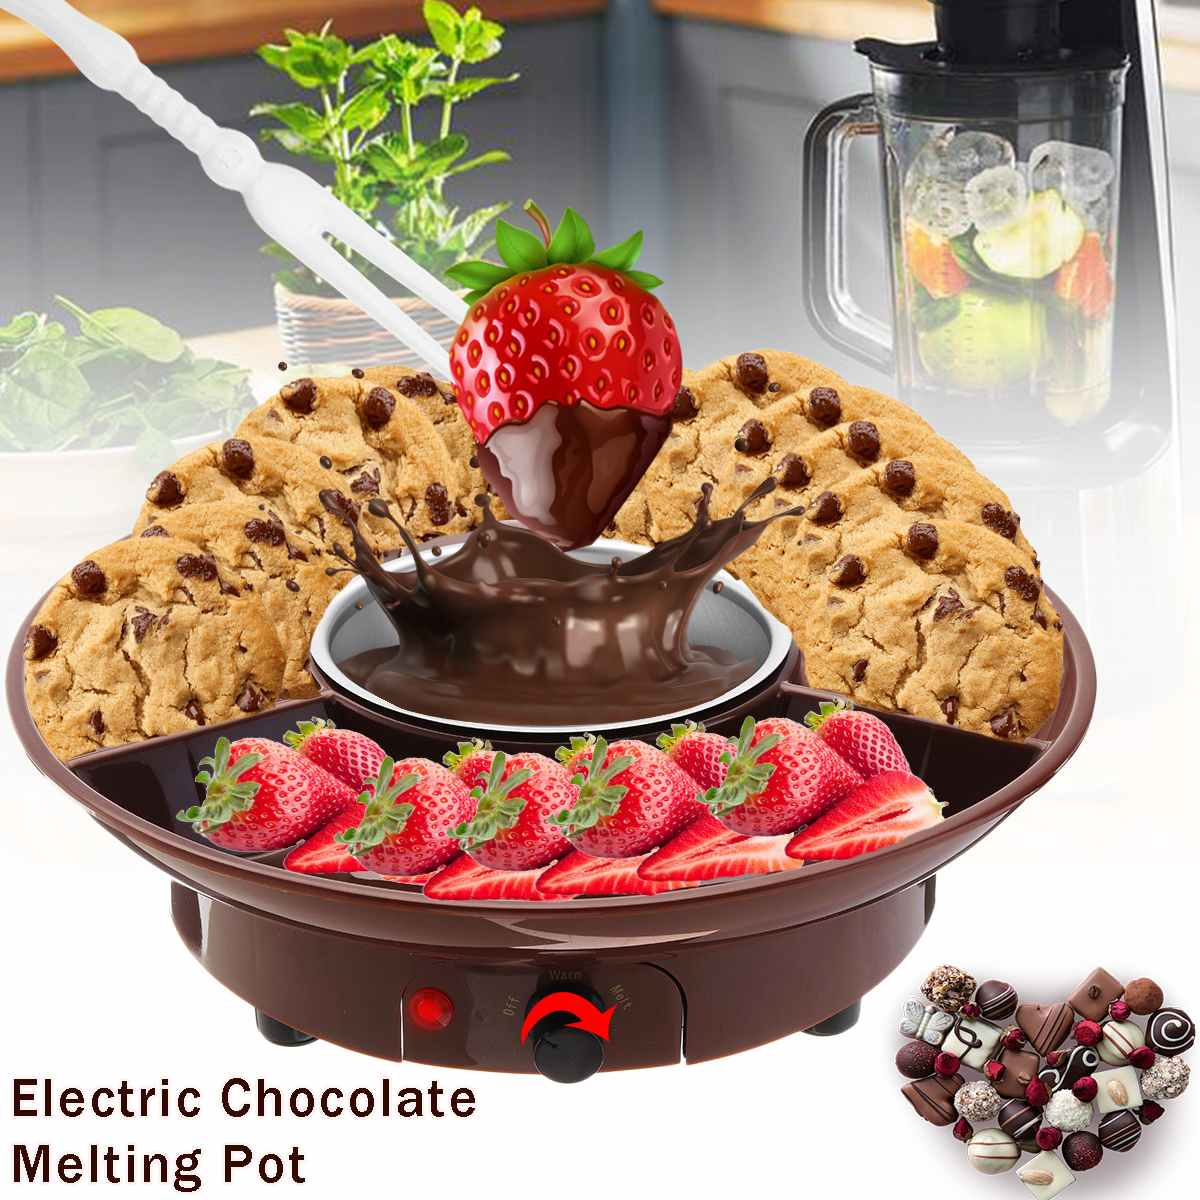 230V 50Hz 260ml Electric Melting Pot Chocolate Fondue Maker Candy Dessert Cheese Fountain Boiler ABS+Stainless Steel Adjustable